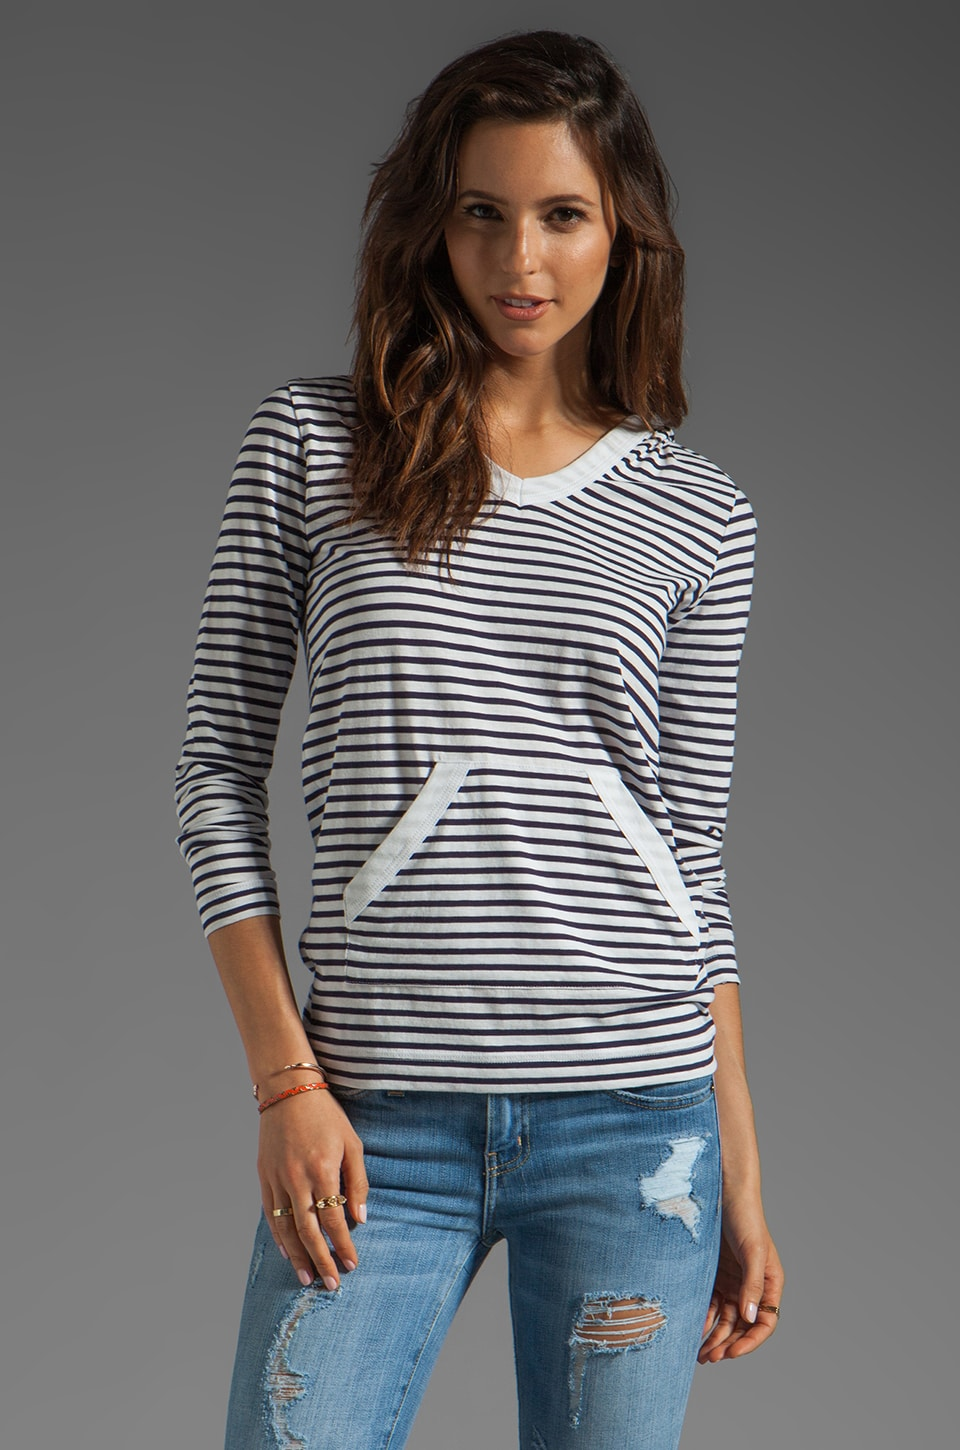 DemyLee Henri Hooded Sailor Stripe Top in White/Navy